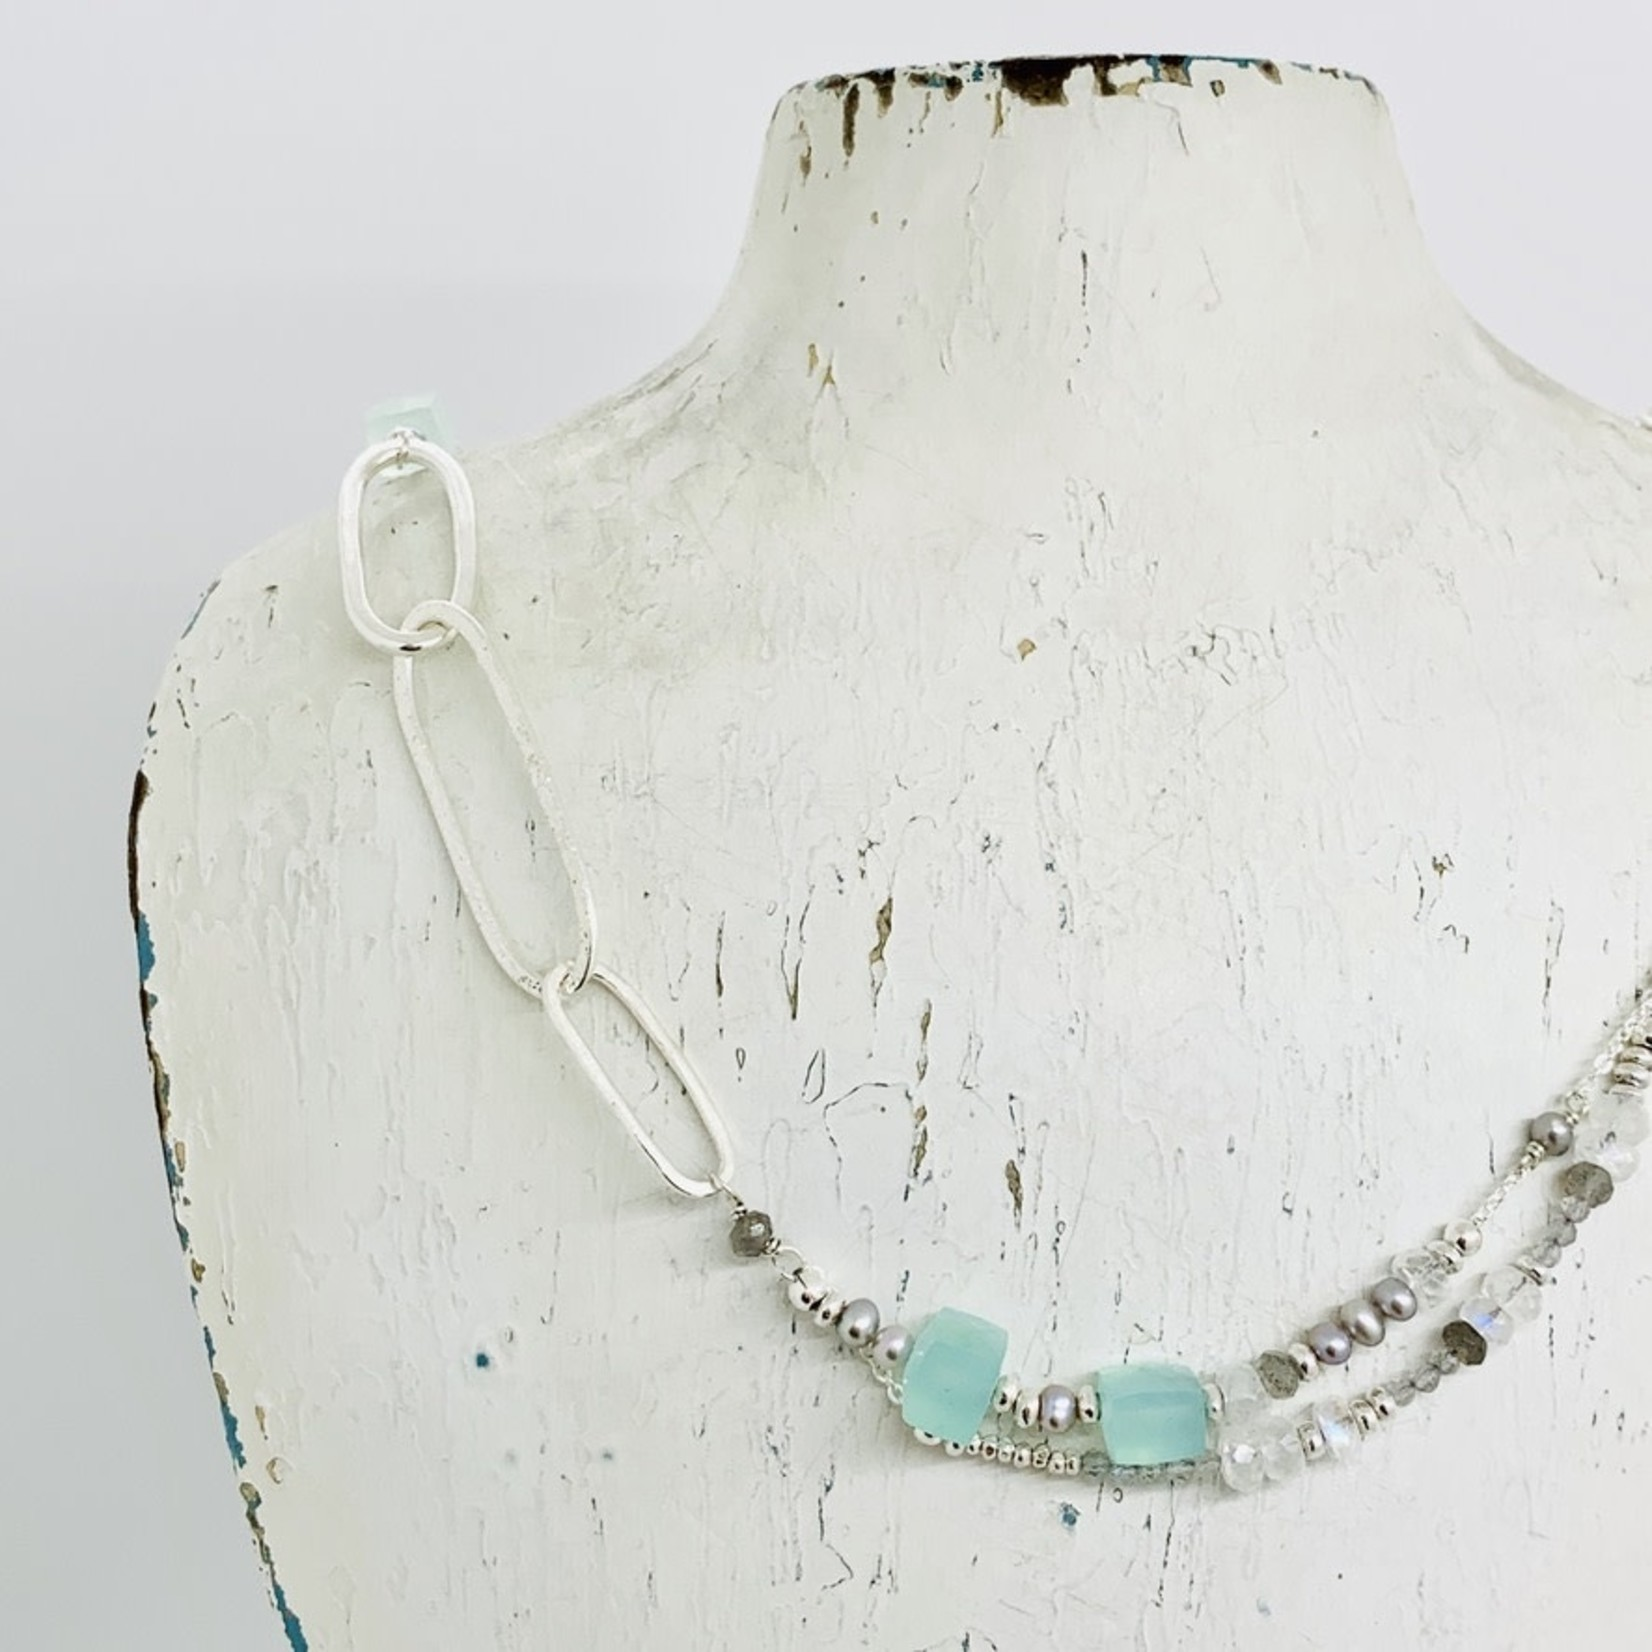 Handmade necklace with aqua chalcedony and grey pearl drape on  sterling link chain